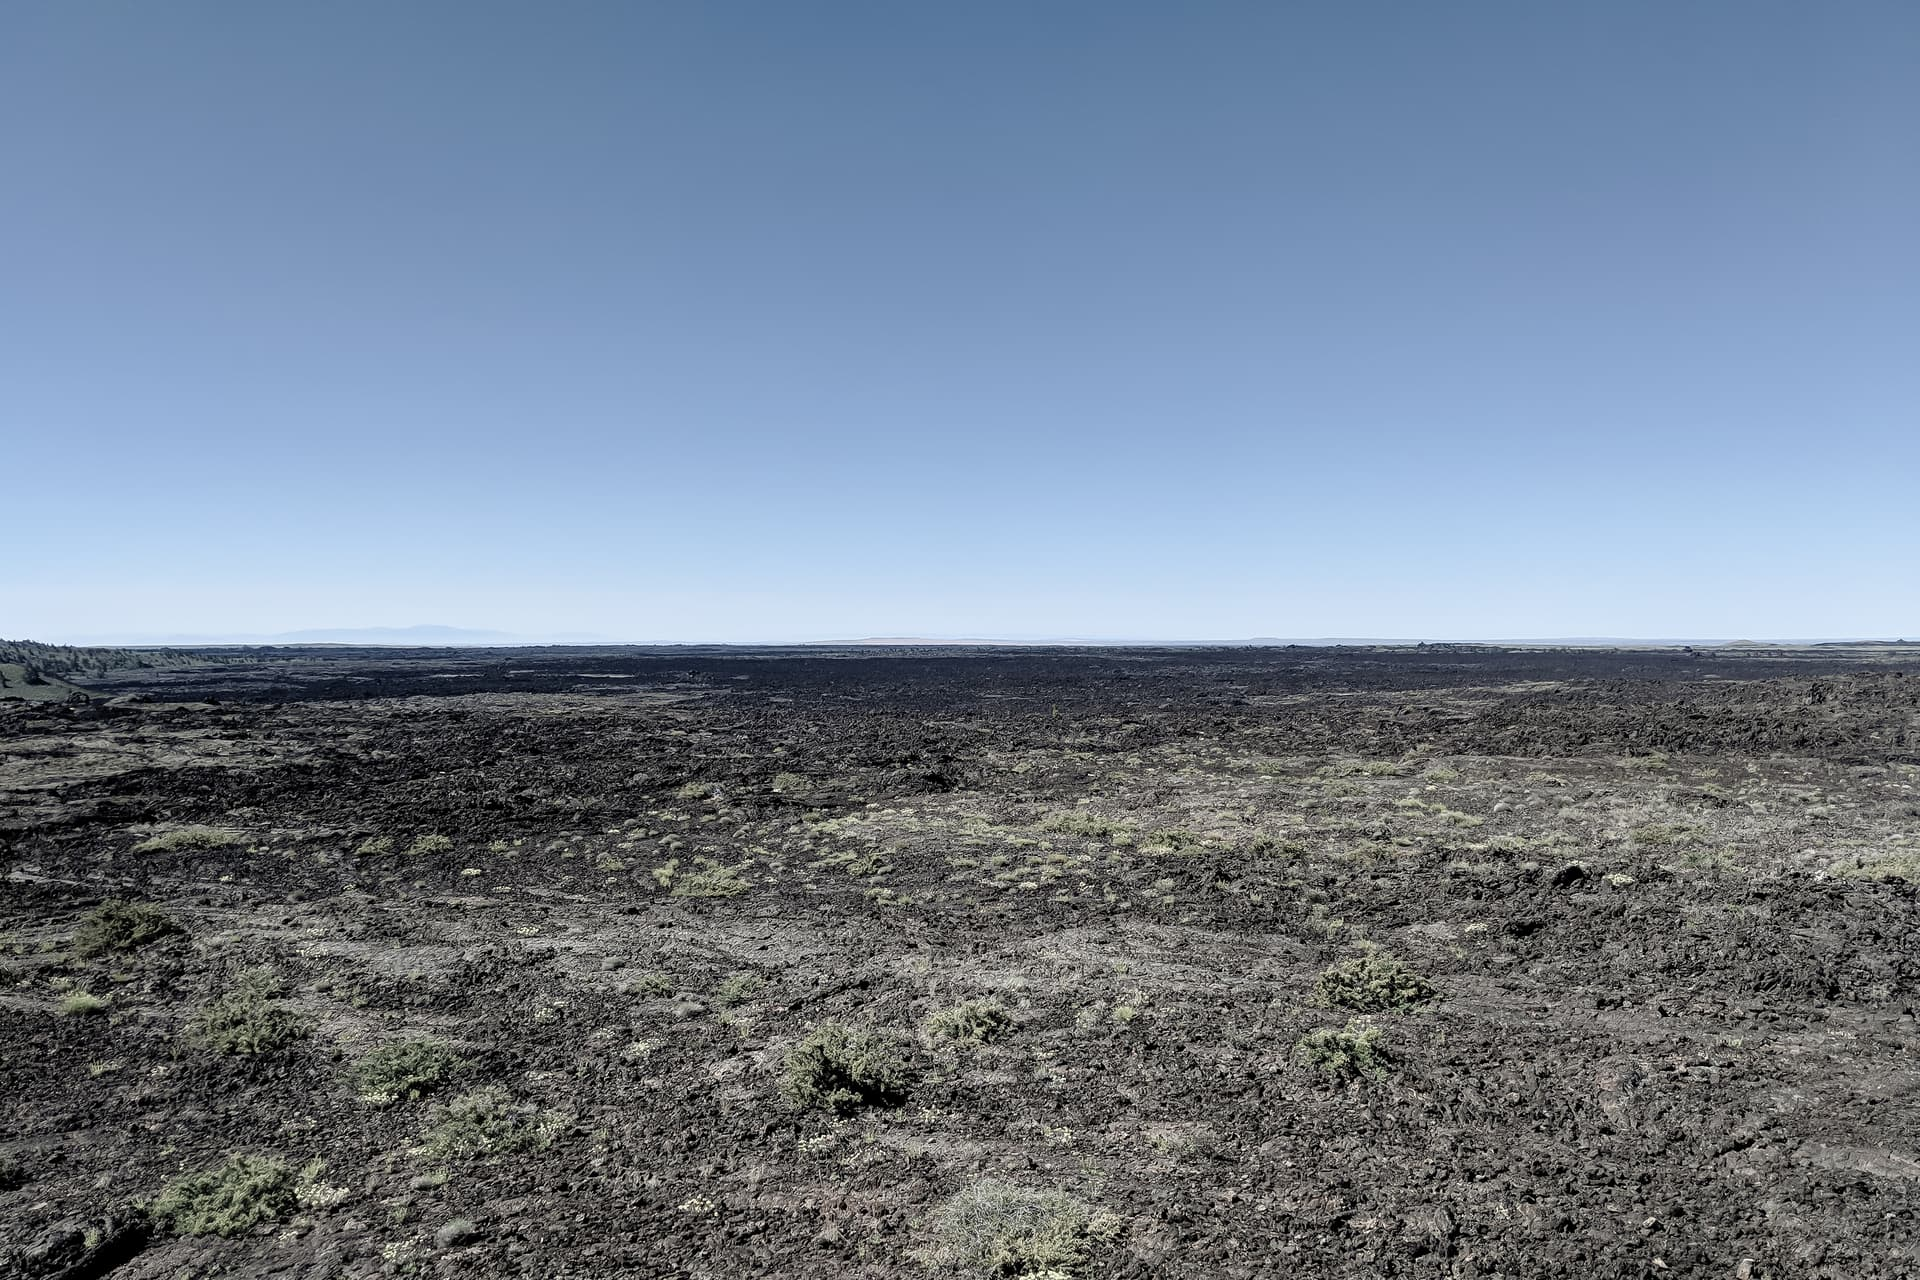 A rugged, flat, black lava flow stretches from horizon to horizon.